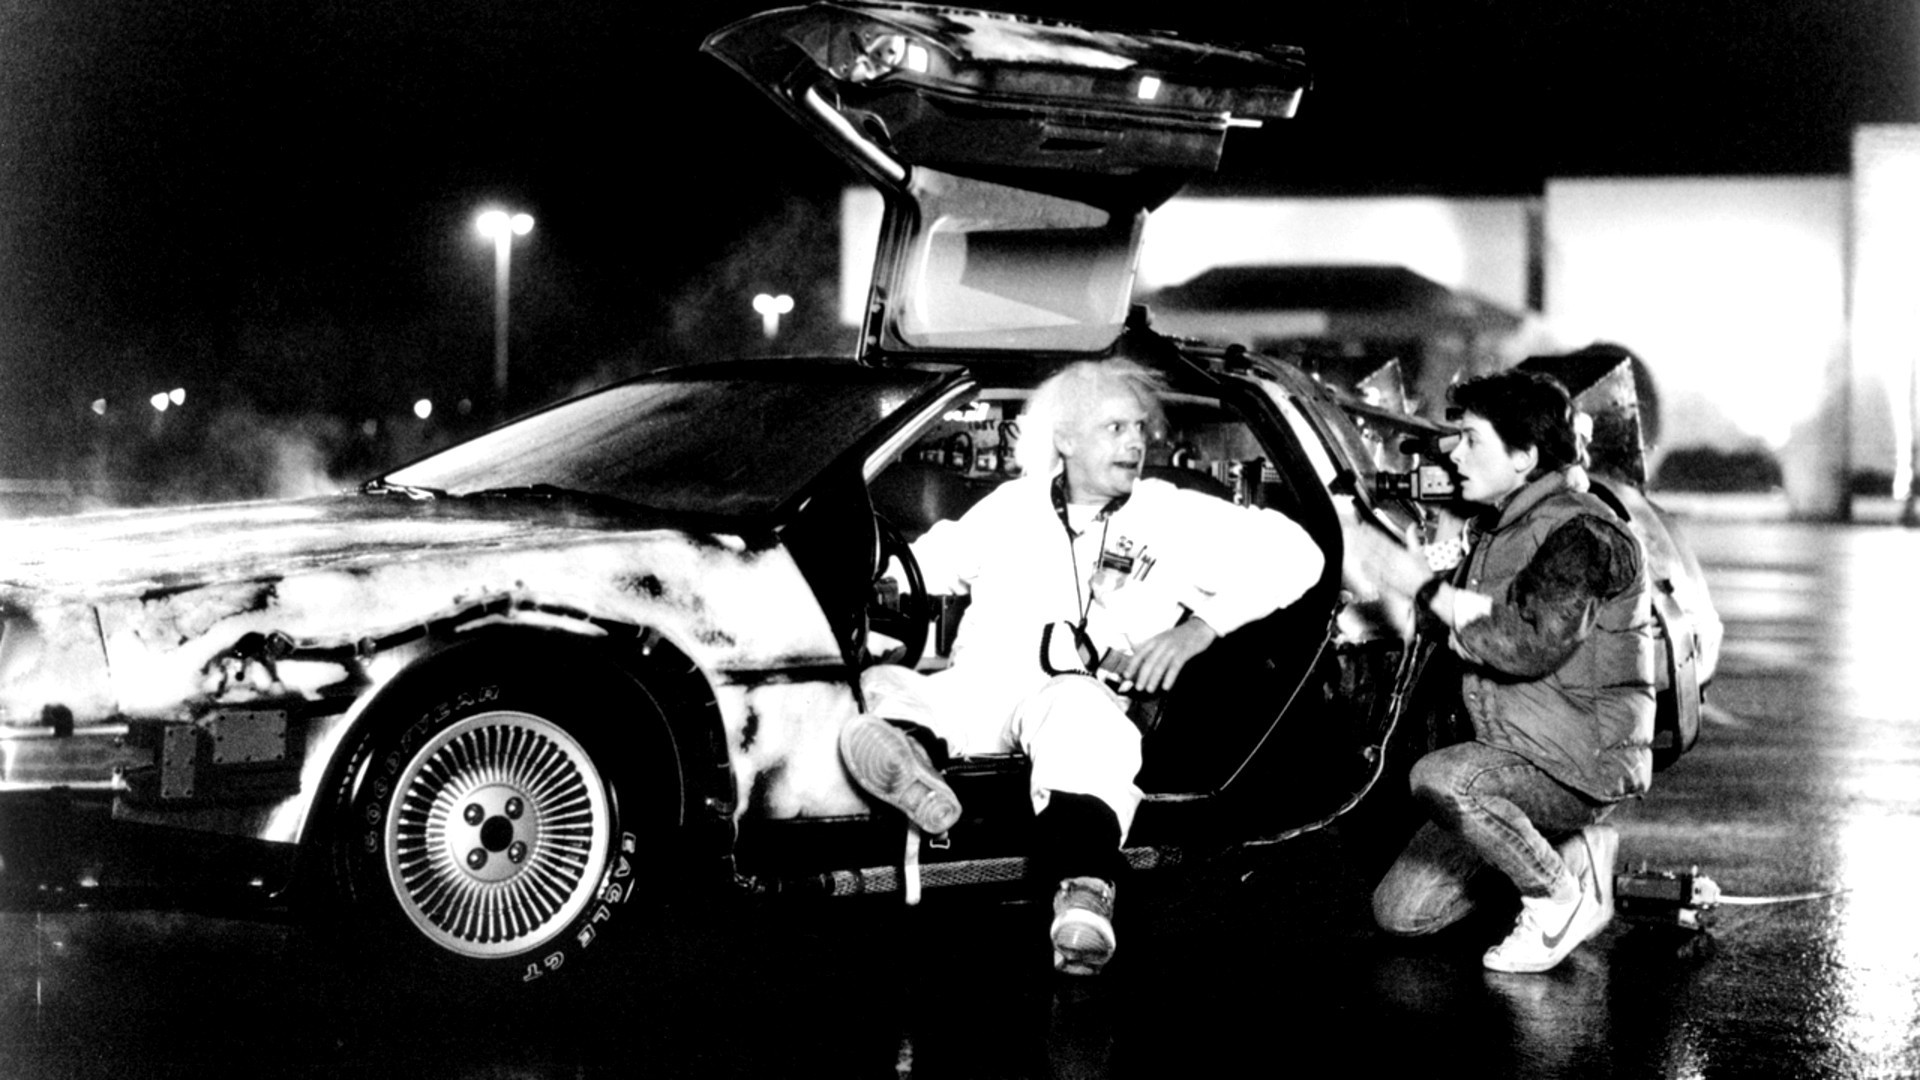 1920x1080 black and white delorean back to the future time machine doc brown michael  j fox marty